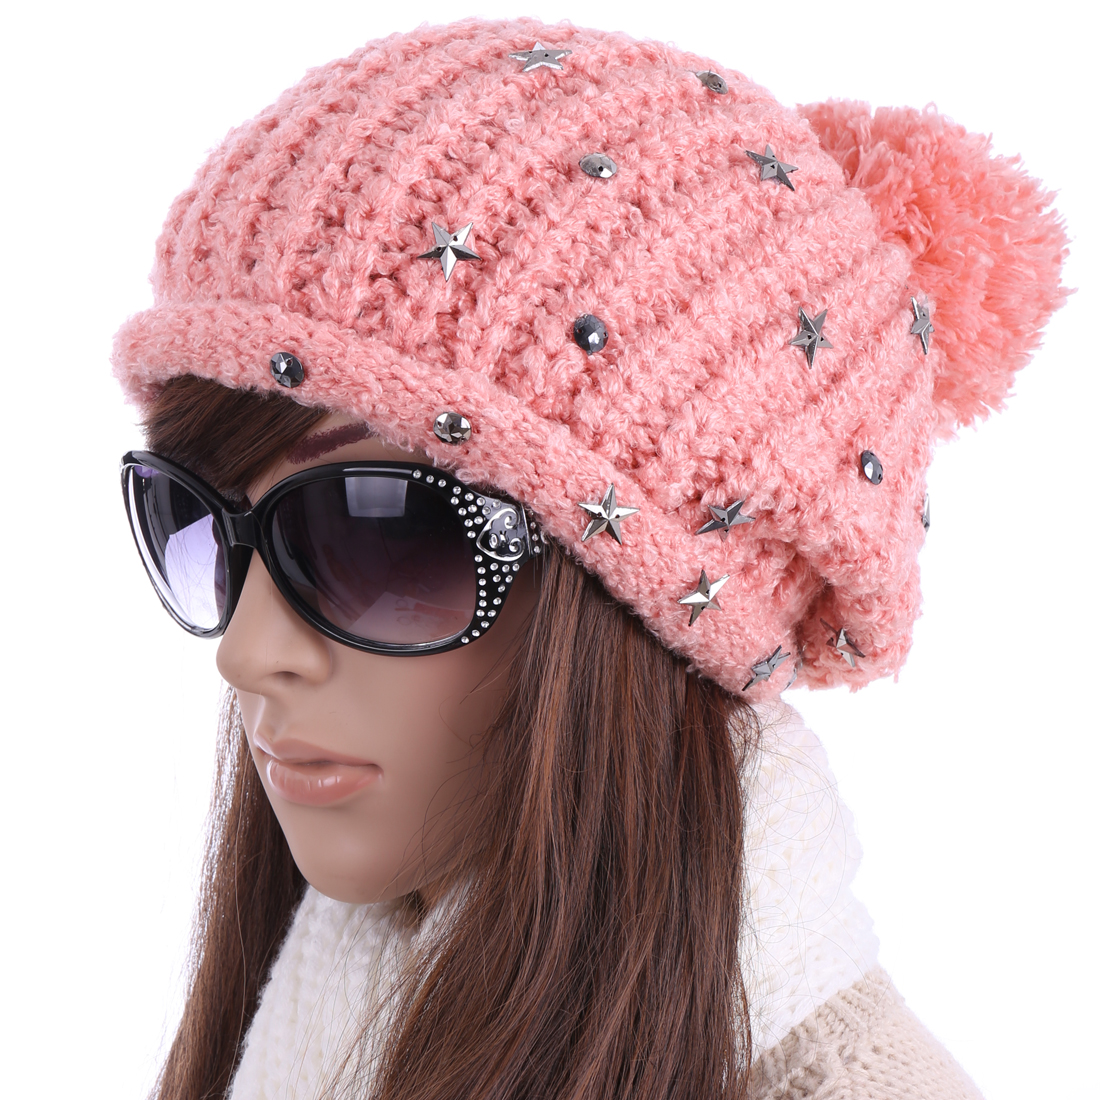 Women's Stars Decor Lovely Pom Pom Elastic Pink Knitted Beanie Hat